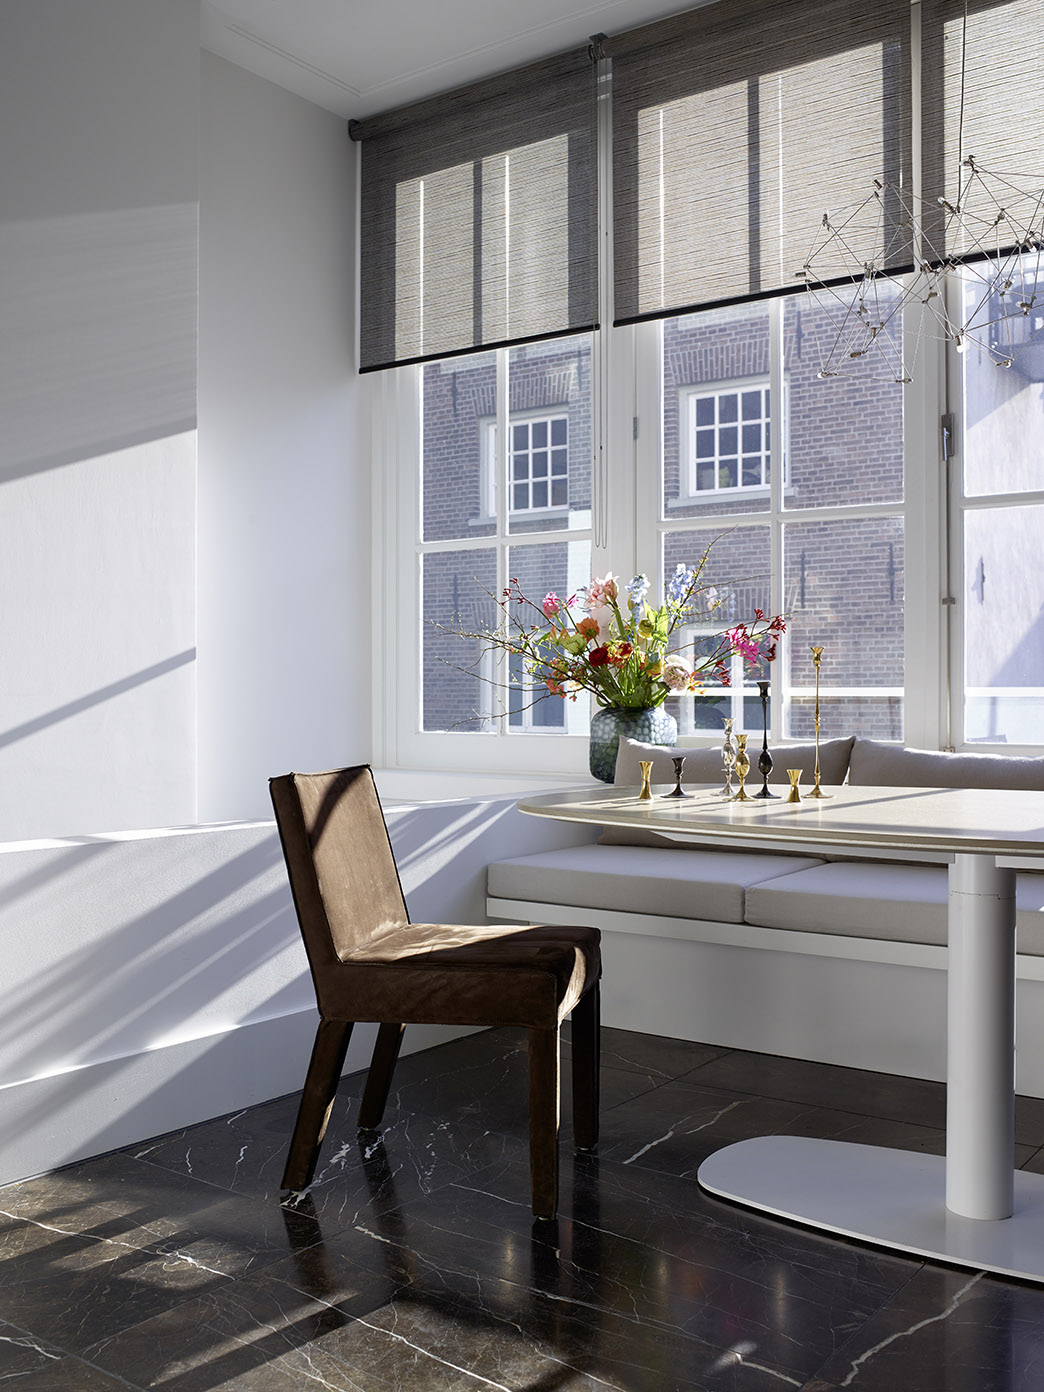 Canal House Amsterdam with KEKKE table and SAAR dining chair